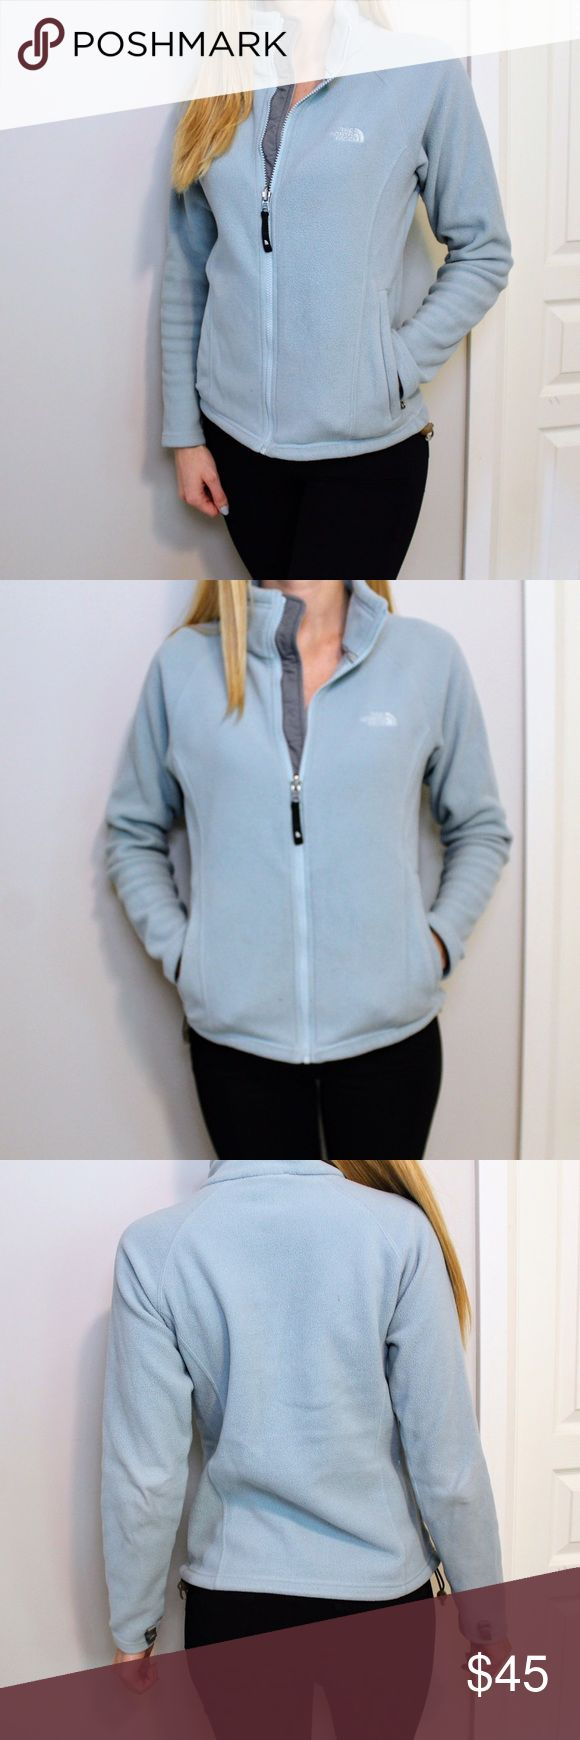 """North Face // Light Blue Zip Up Fleece North Face // Light Blue Zip Up Fleece   Good used condition   DETAILS 100% polyester Two front zippered pockets Adjustable elastic drawstring along waist seam   SIZING Size small Sleeve 19"""" Length 22"""" Bust 38""""   Let me know if you have questions! North Face Jackets & Coats"""